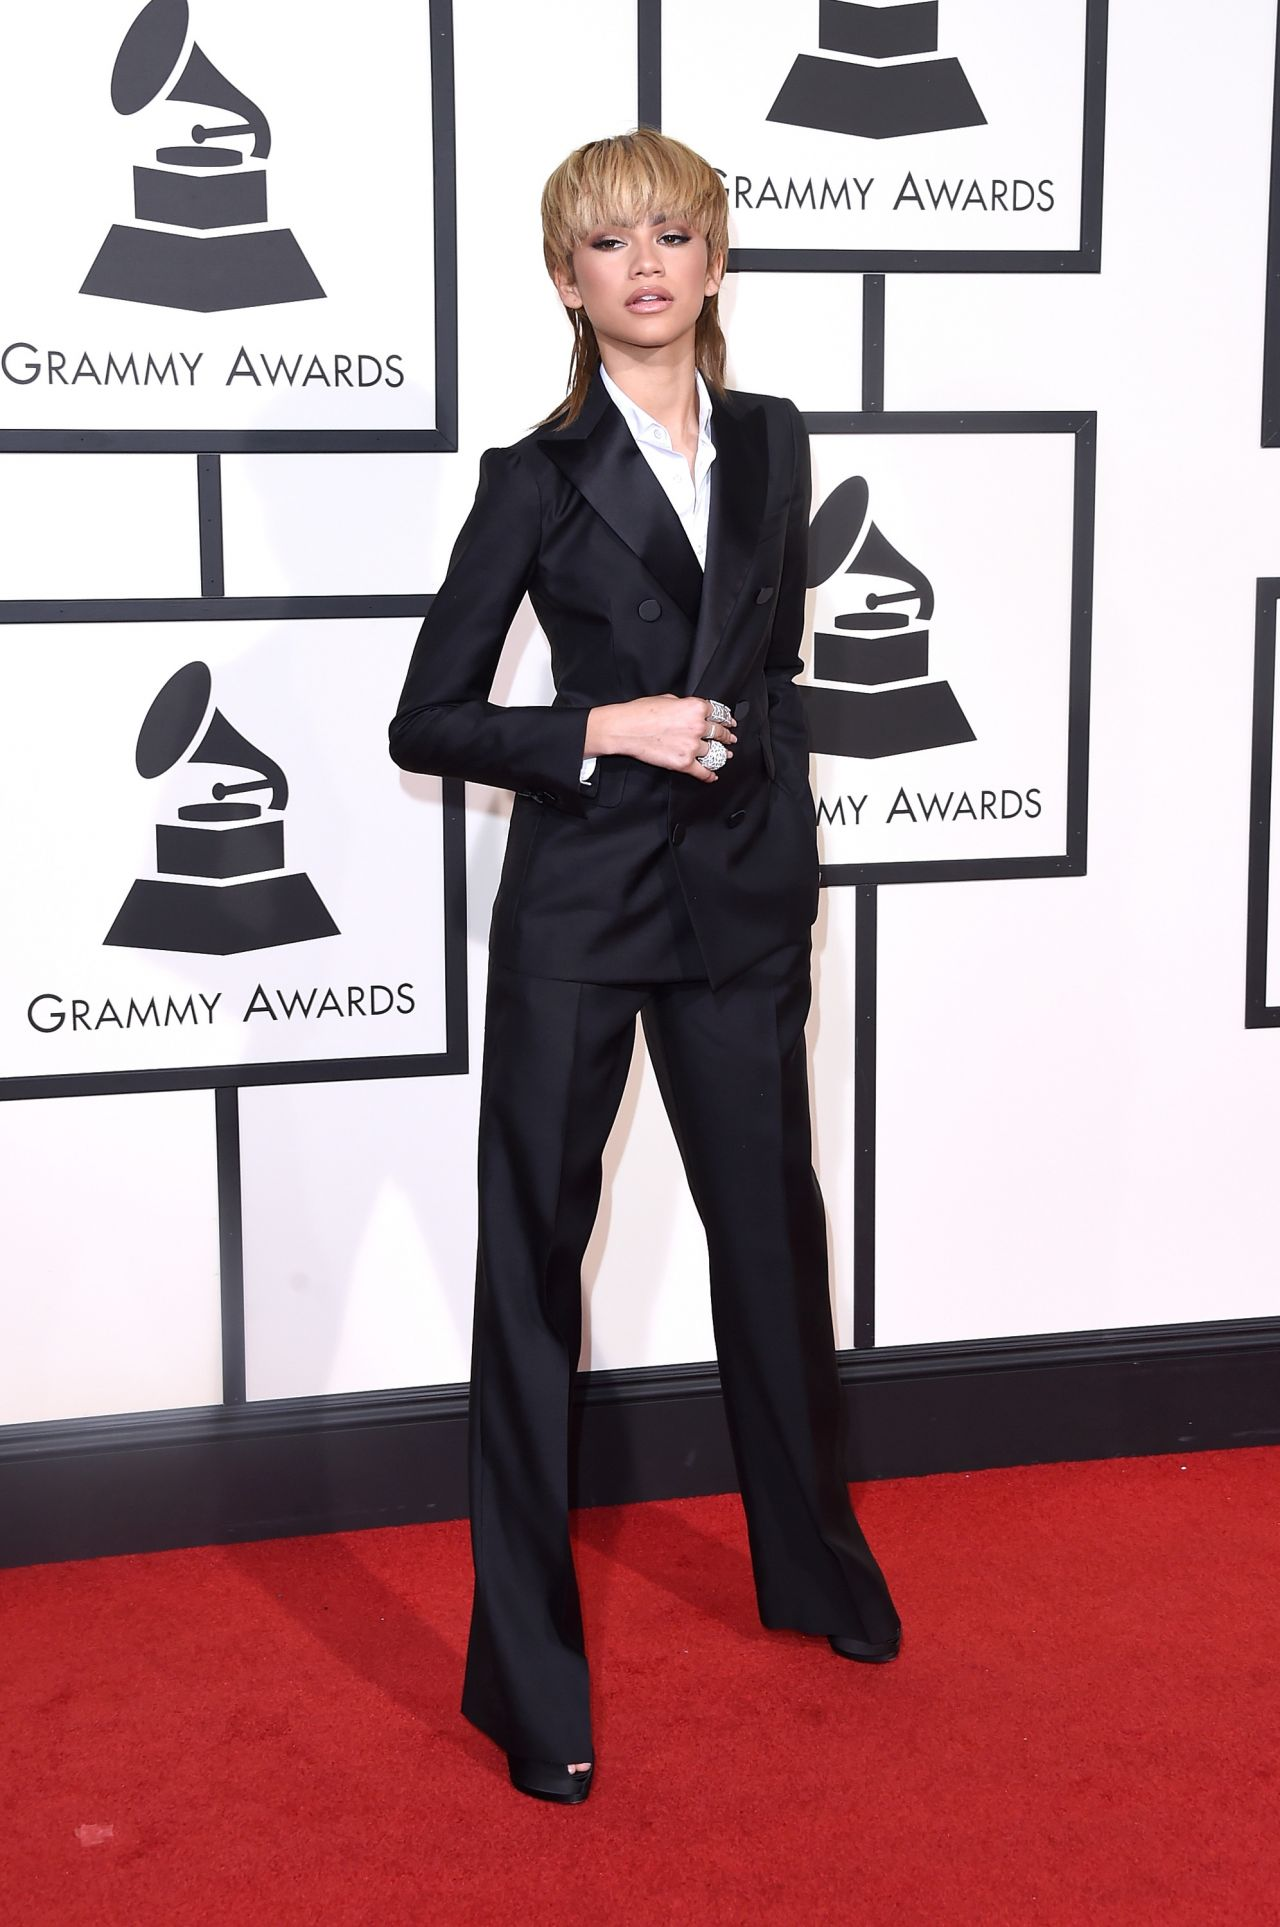 zendaya-2016-grammy-awards-in-los-angeles-ca-1